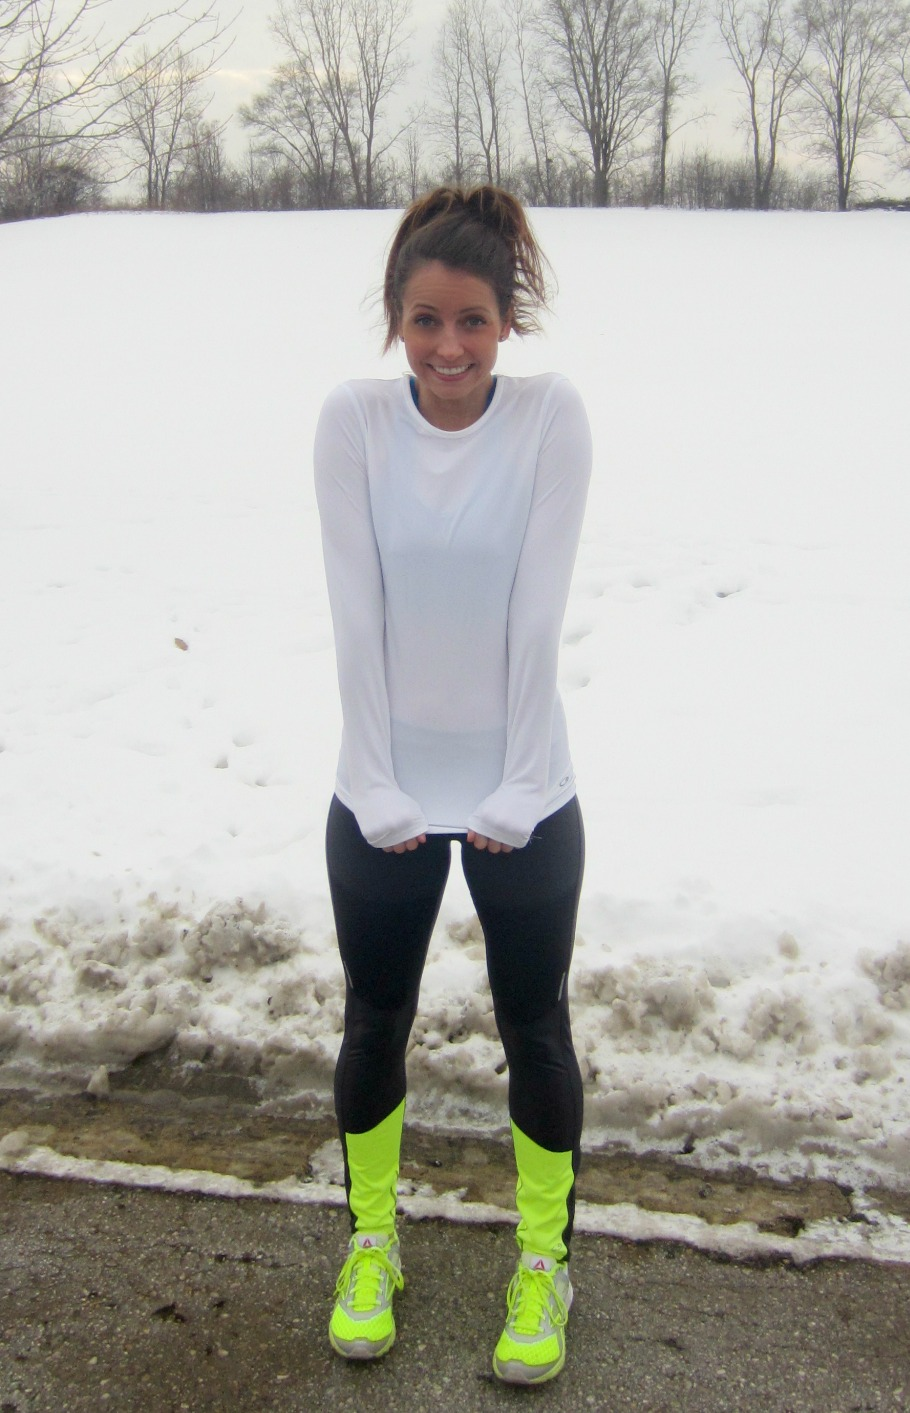 Target C9 running tights and compression shirt